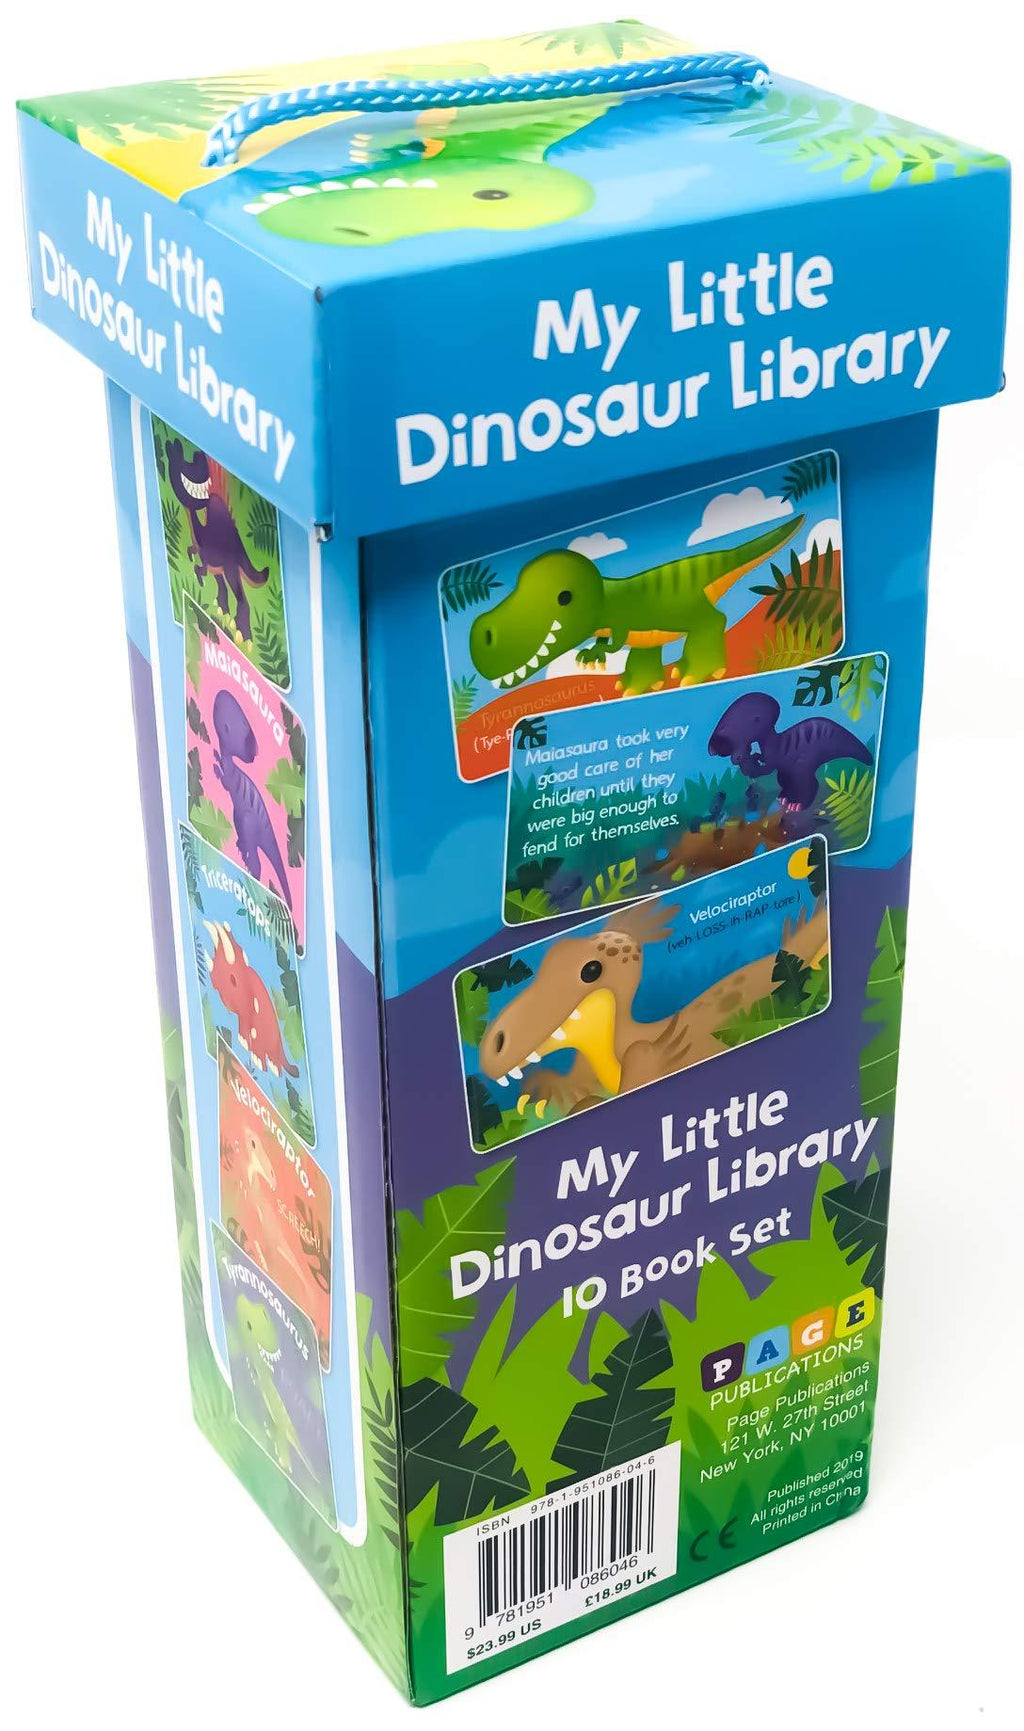 Marissa's Books & Gifts, LLC 9781951086046 Little Dinosaur Library (10 Book Set)